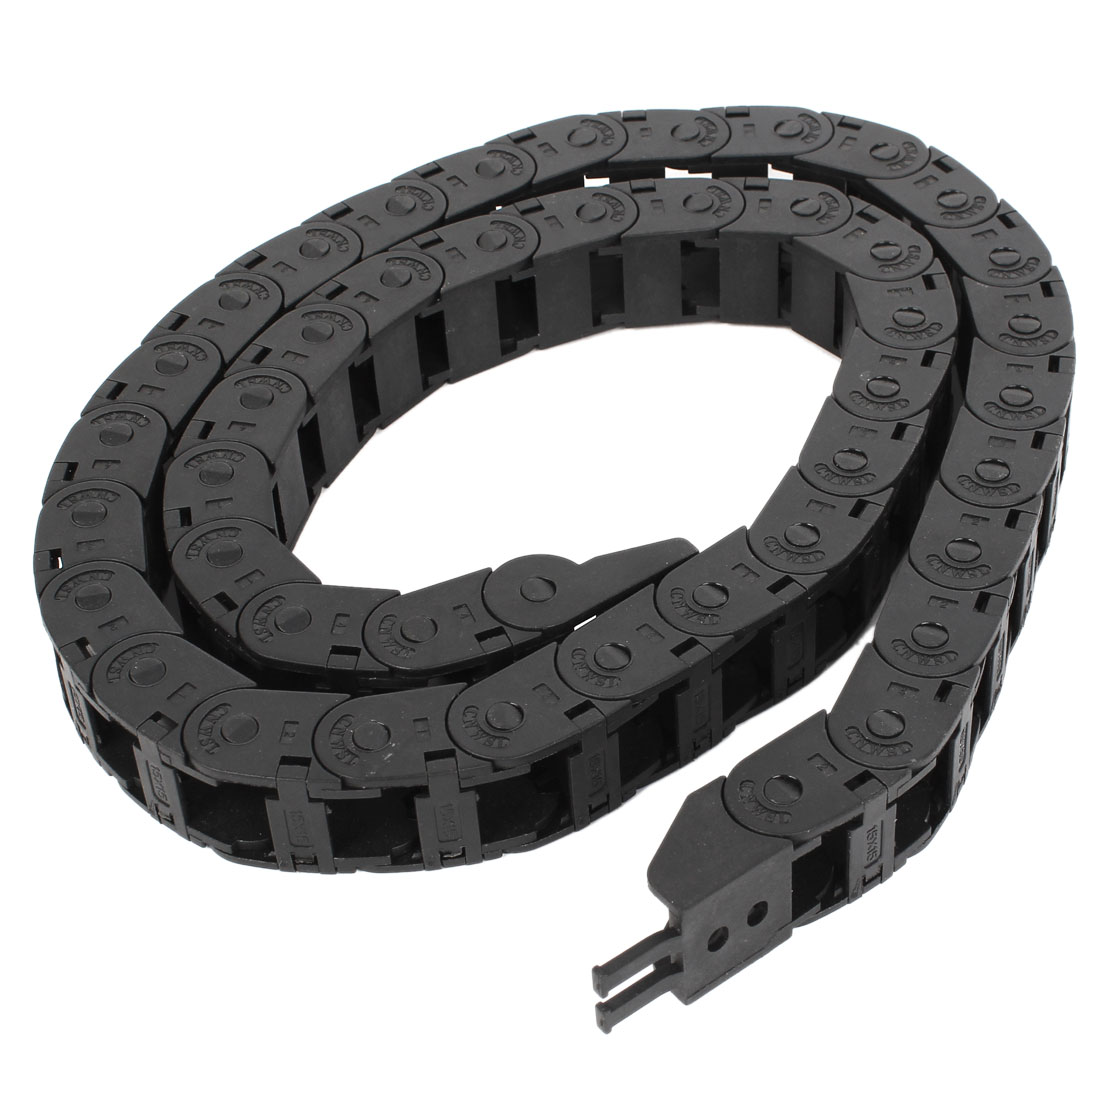 102cm R5.5cm Plastic Open 15mmx15mm Wire Cable Carrier Drag Chain Black